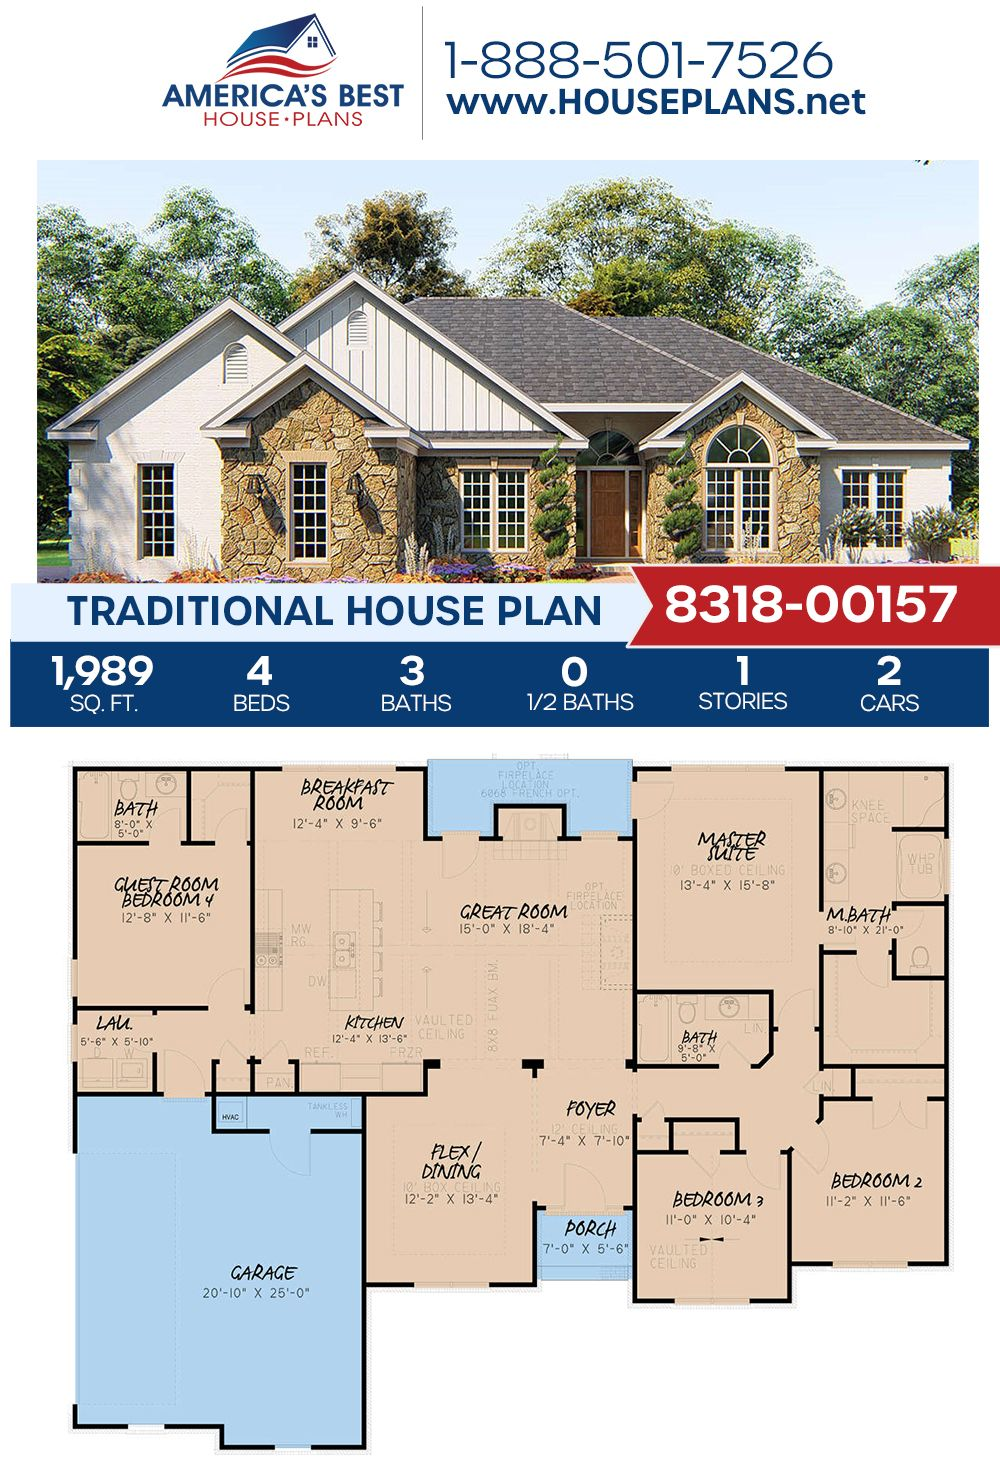 House Plan 8318 00157 Traditional Plan 1 989 Square Feet 4 Bedrooms 3 Bathrooms Open House Plans Traditional House Plans House Plans